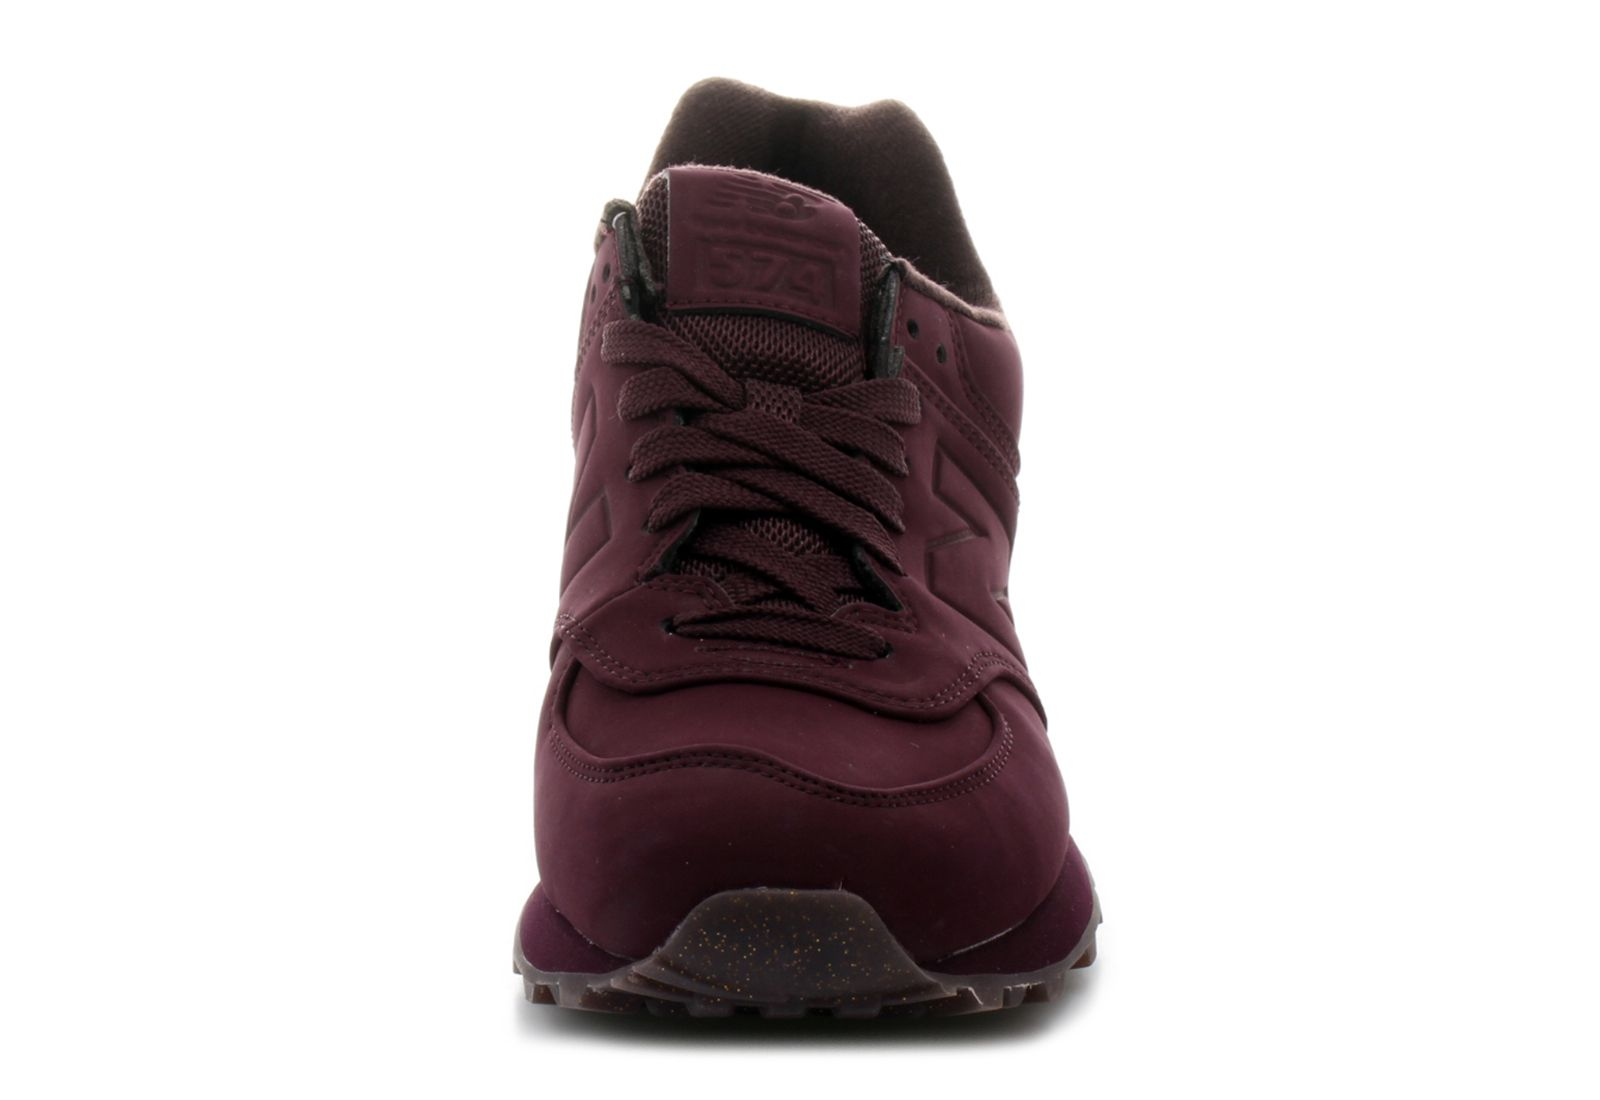 New Balance Shoes - Wl574 - WL574MTB - Online shop for sneakers ... bf699e5cb60